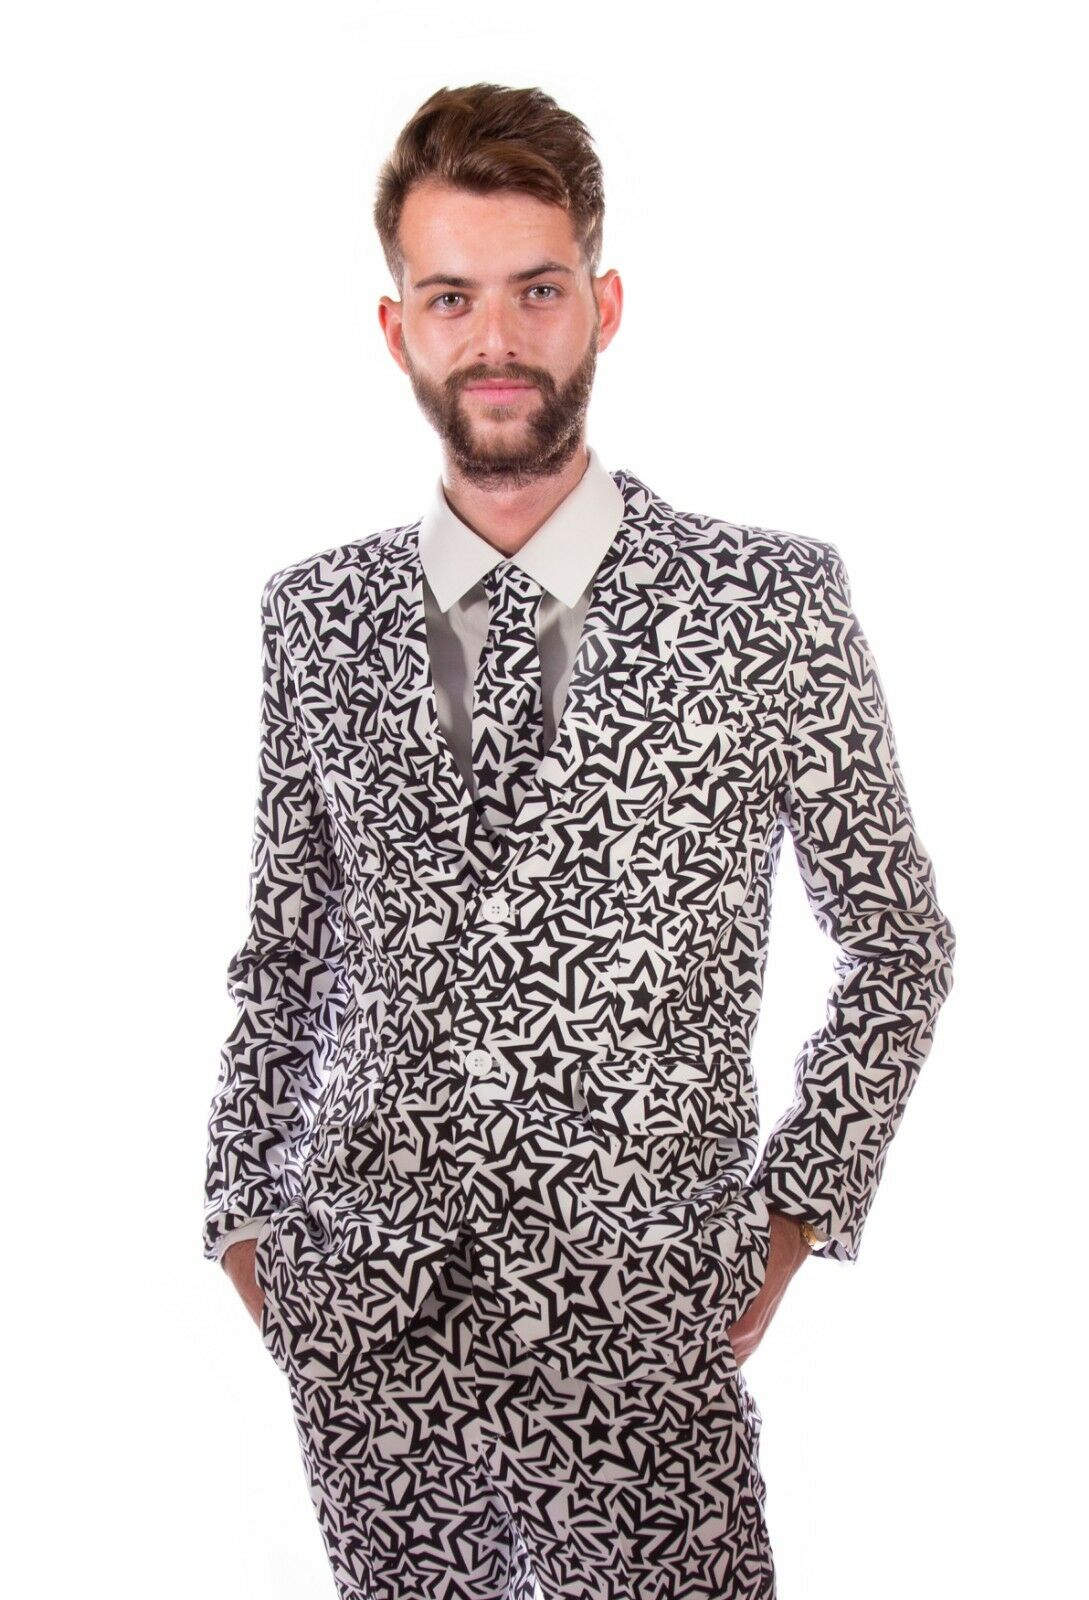 New Stag Do Suit Fancy Fancy Fancy Dress Costume, Stand out suits for men who like to party | Guter weltweiter Ruf  71fedd